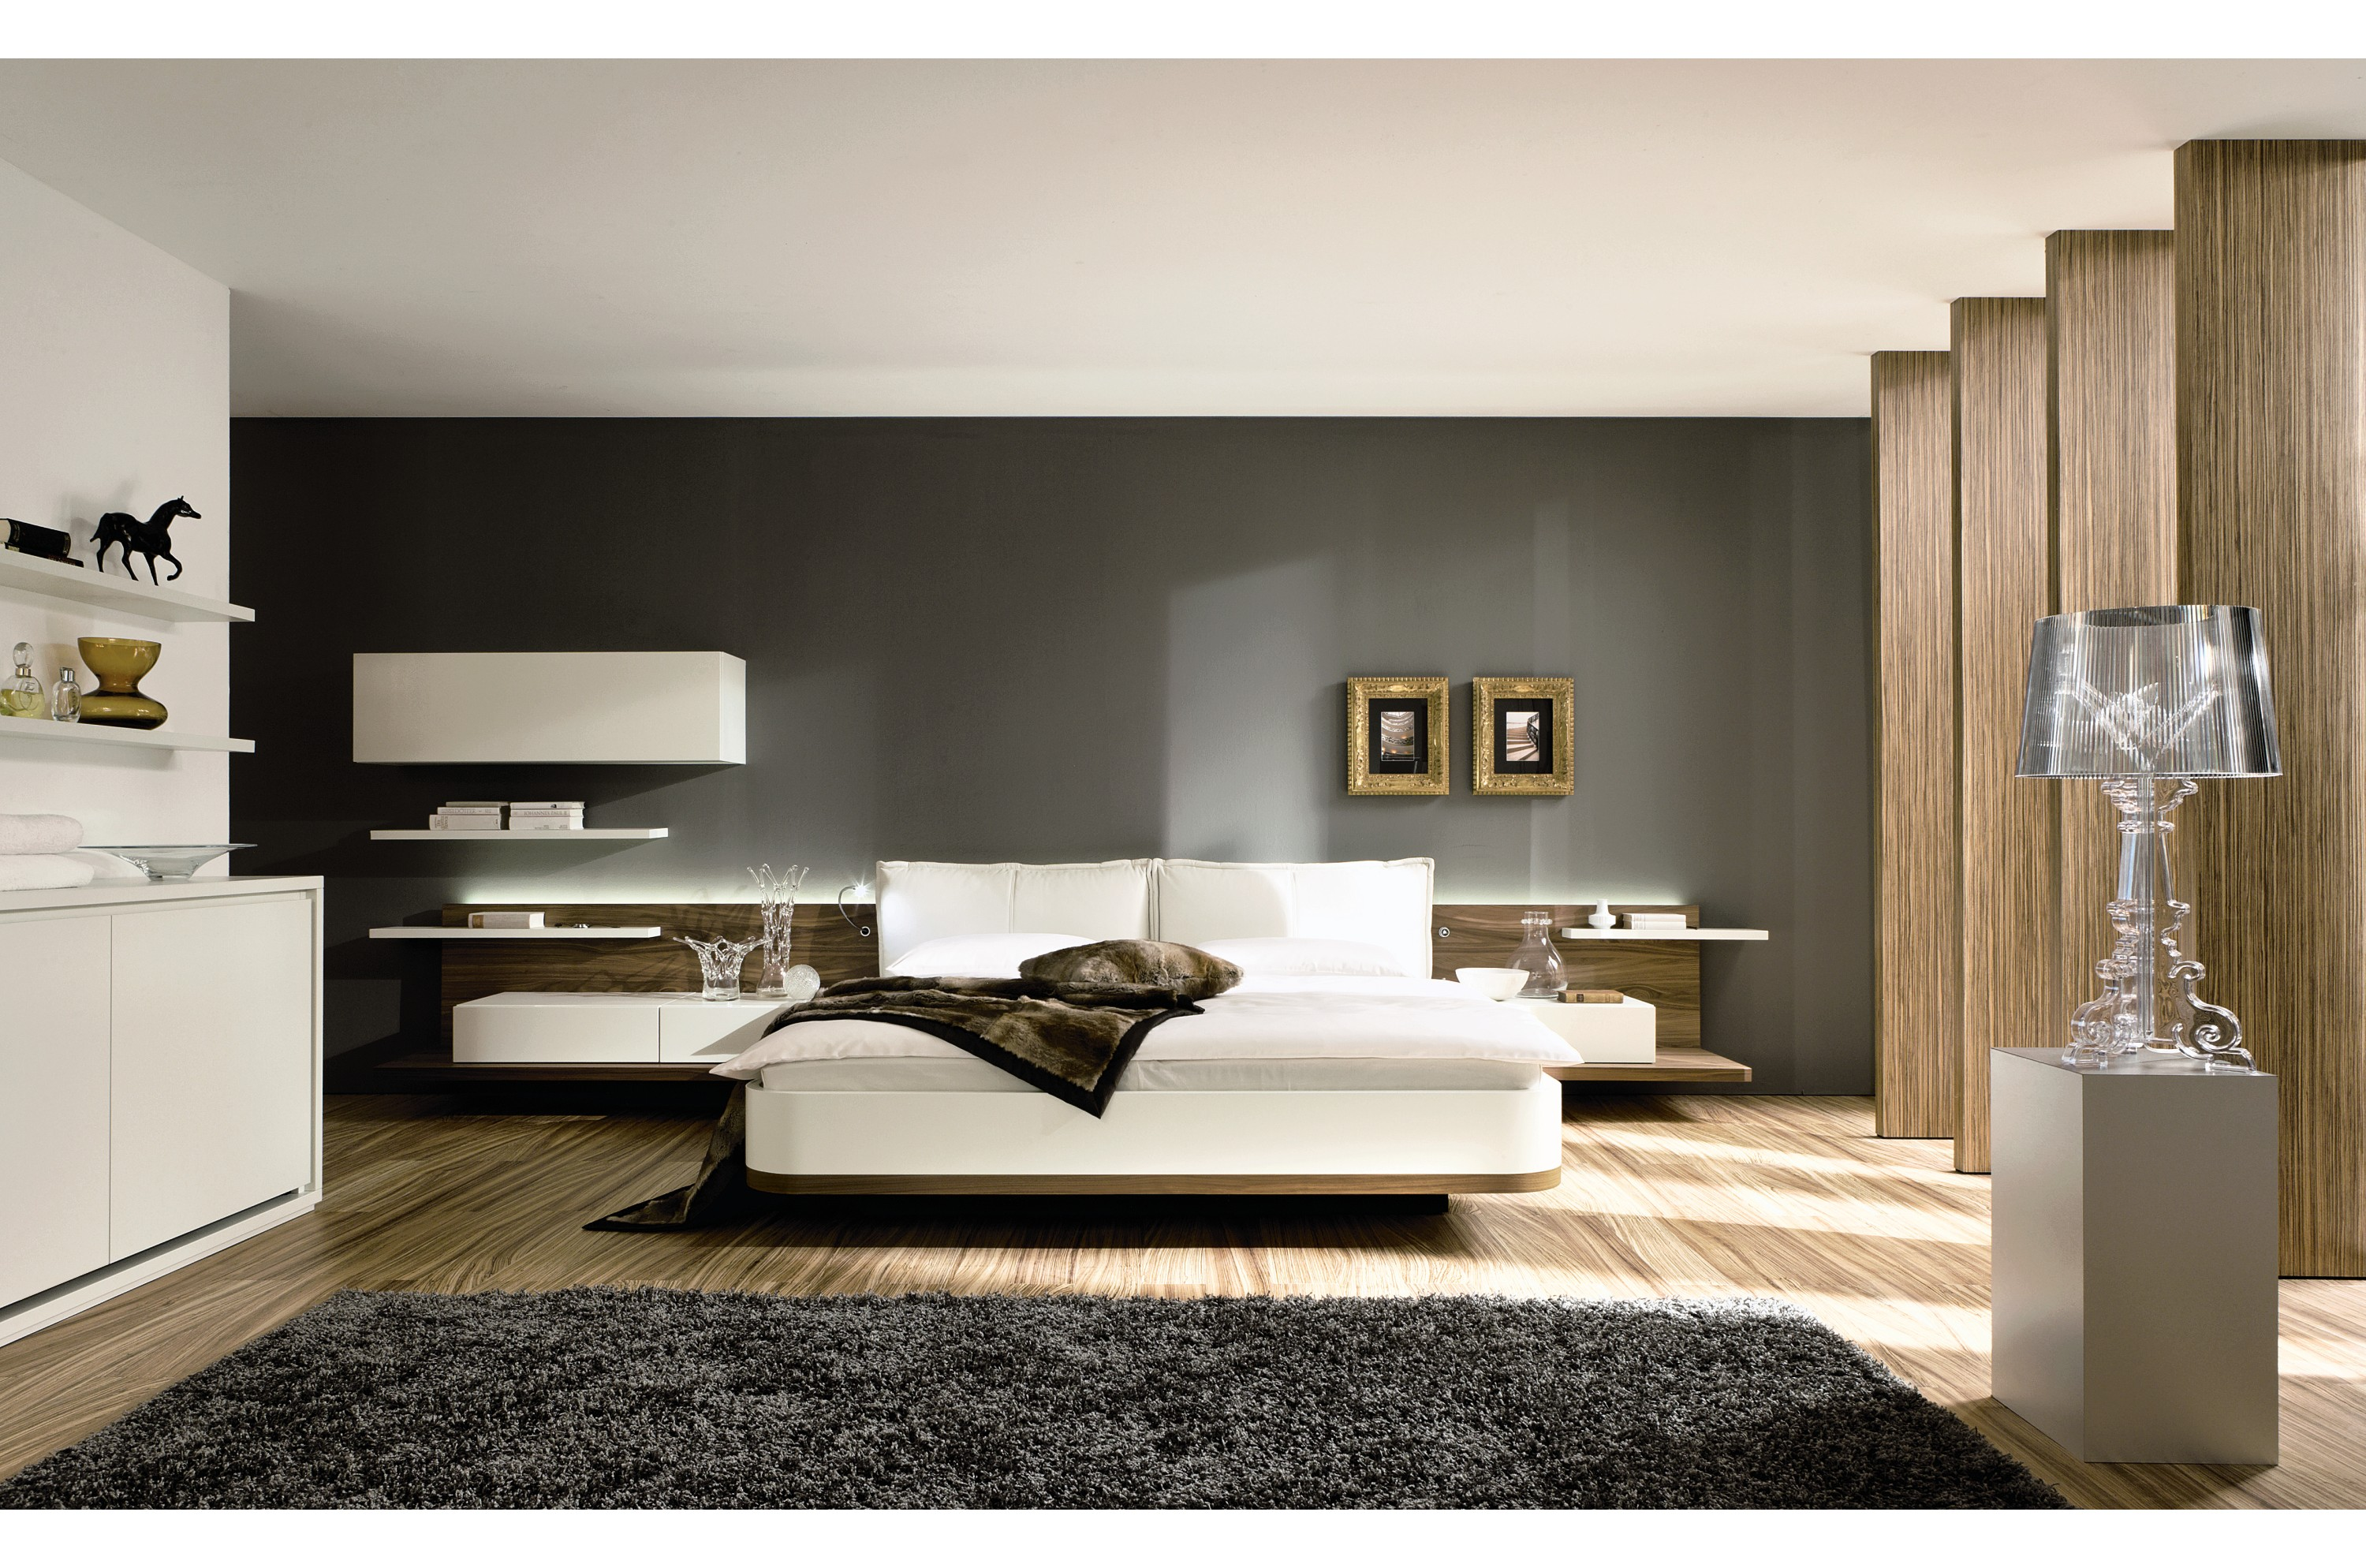 Modern bedroom accessories - Modern Bedroom Innovation Ideas Interior Design Many Teen Designs Space Saving Ideaserior Decorating Modern Bedroom